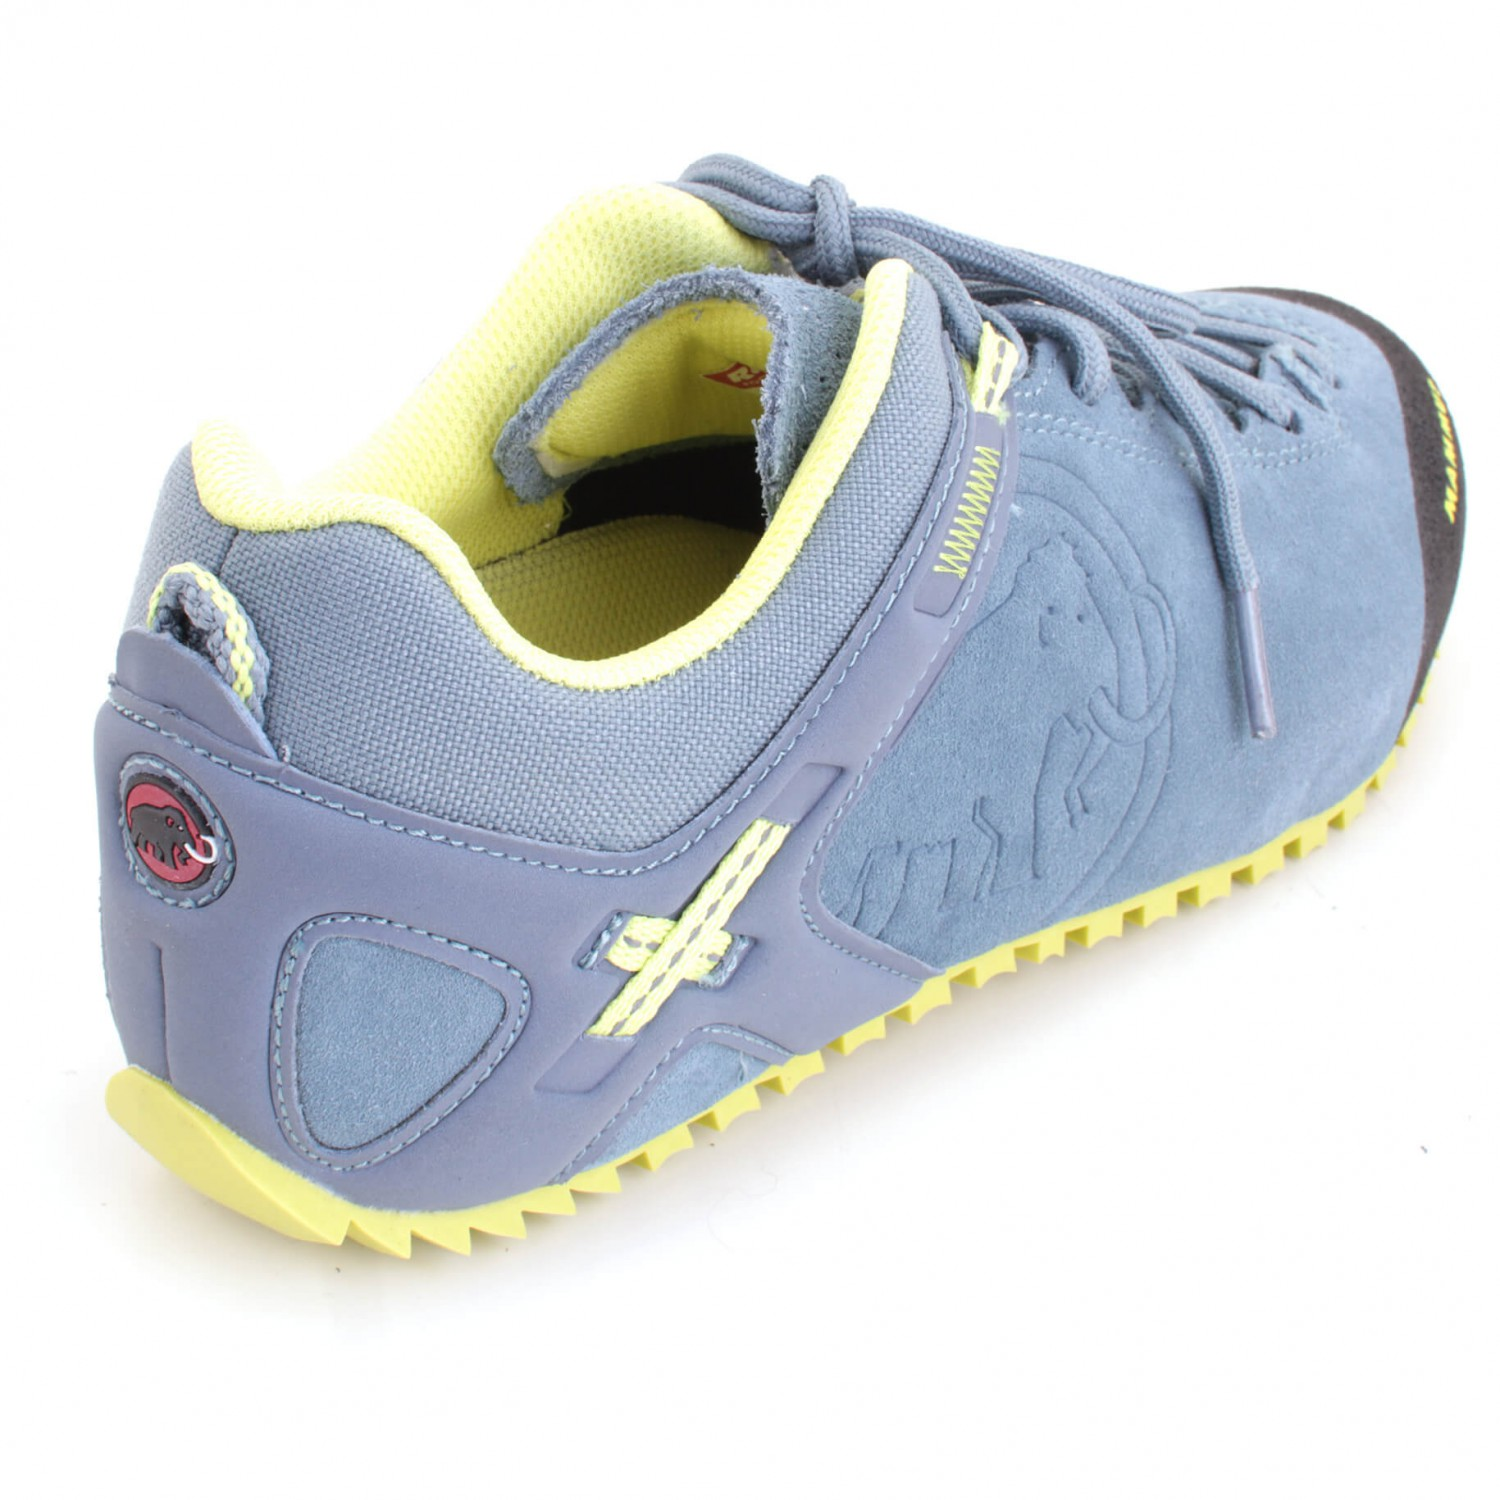 huge discount new arrivals quality Mammut - Women's Needle - Approach shoes